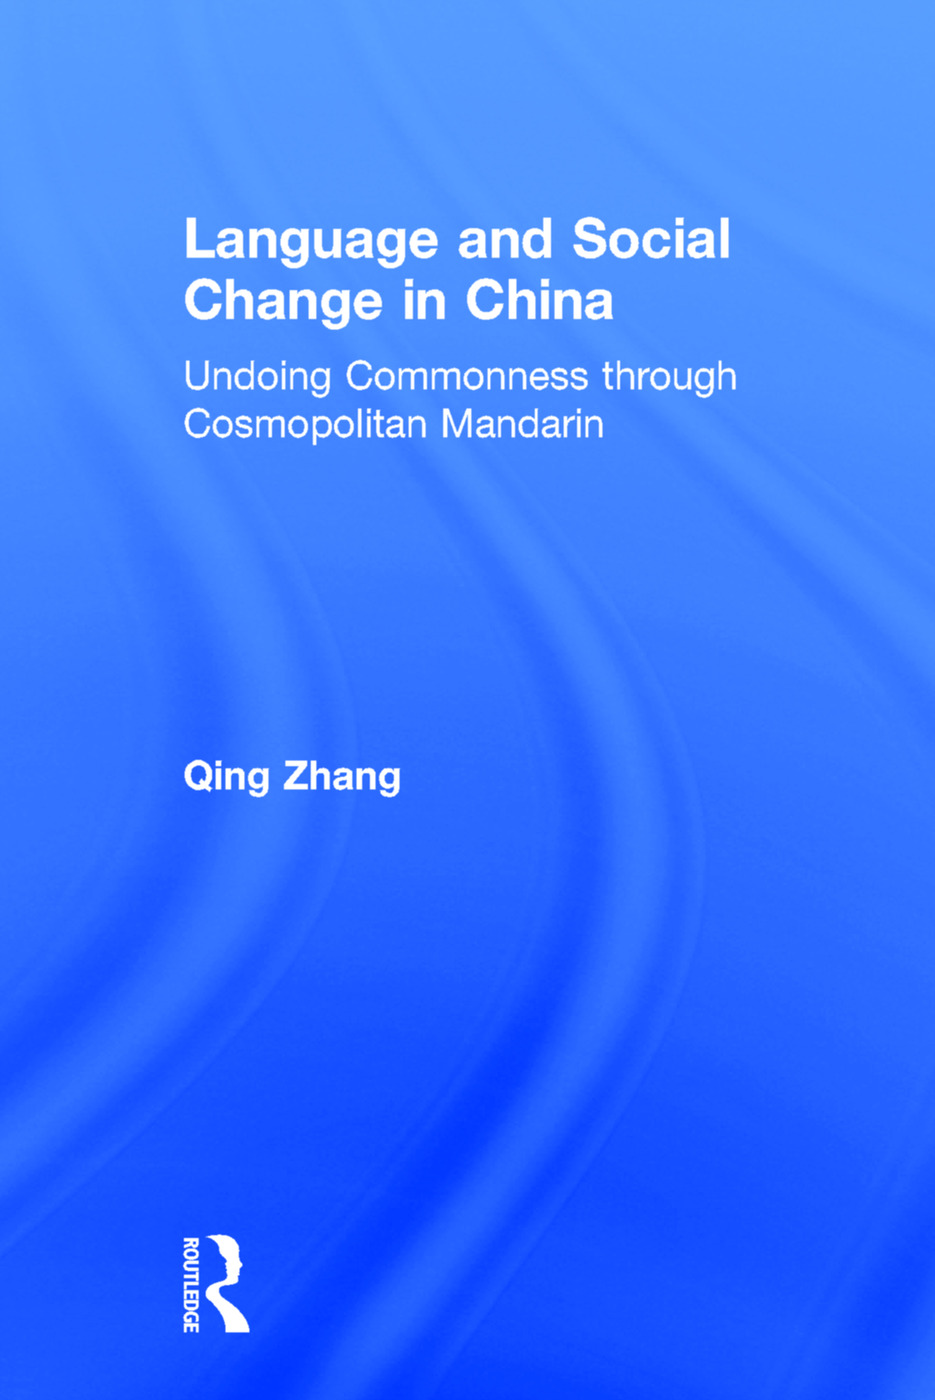 Cosmopolitan Mandarin in the Making of a New Chinese Middle-Class Consumer